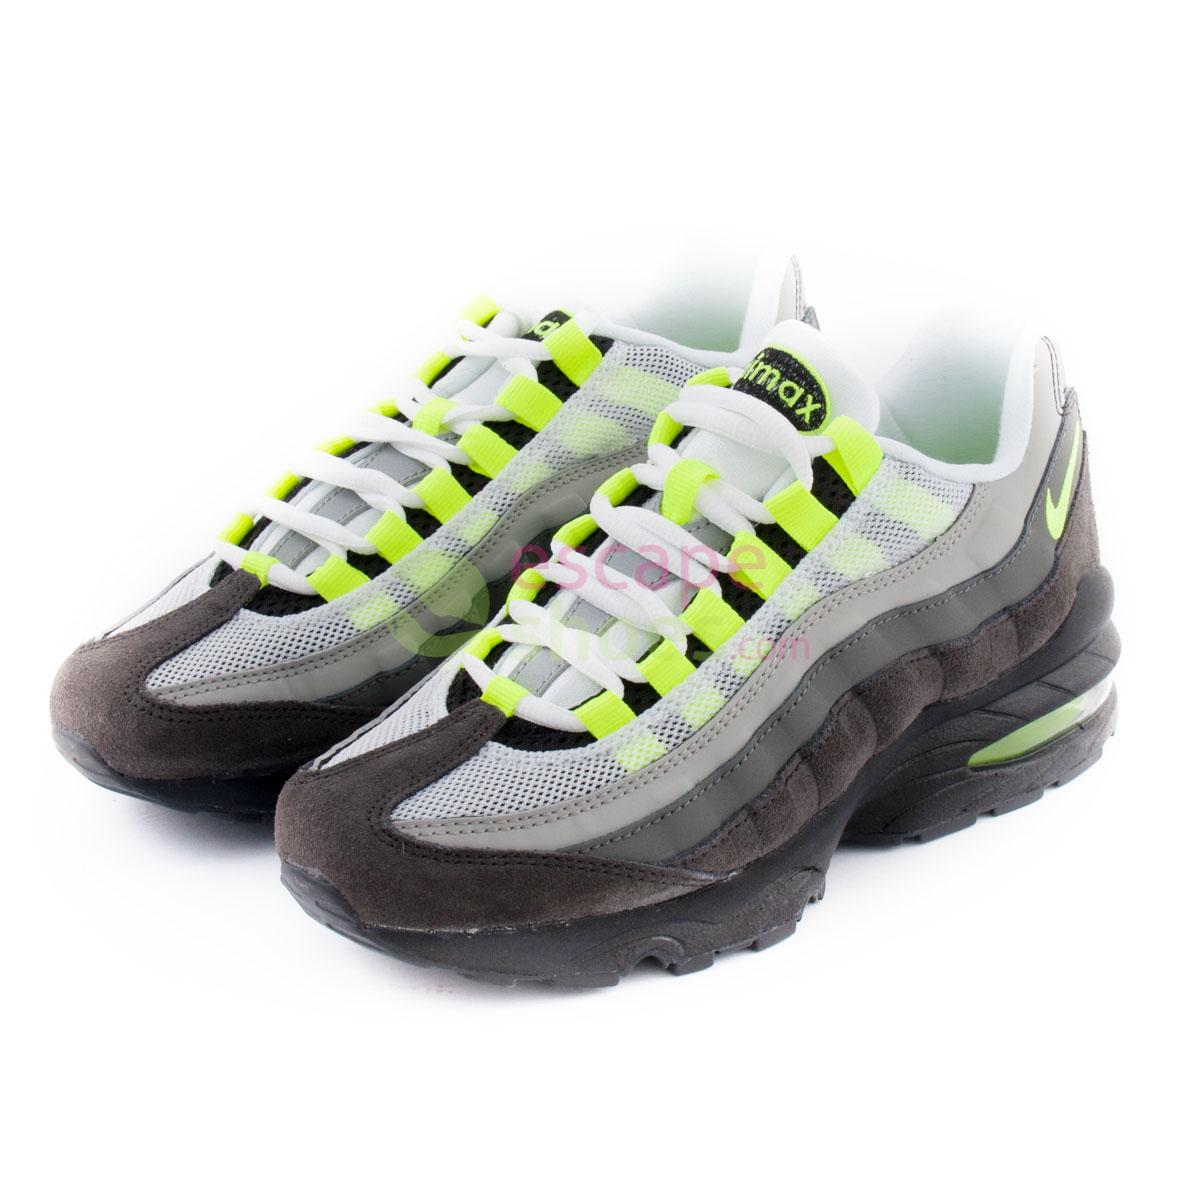 48373ca63f7 Buy your Sneakers NIKE Air Max 95 Gs Black Volt Ash Pewter 307565 ...